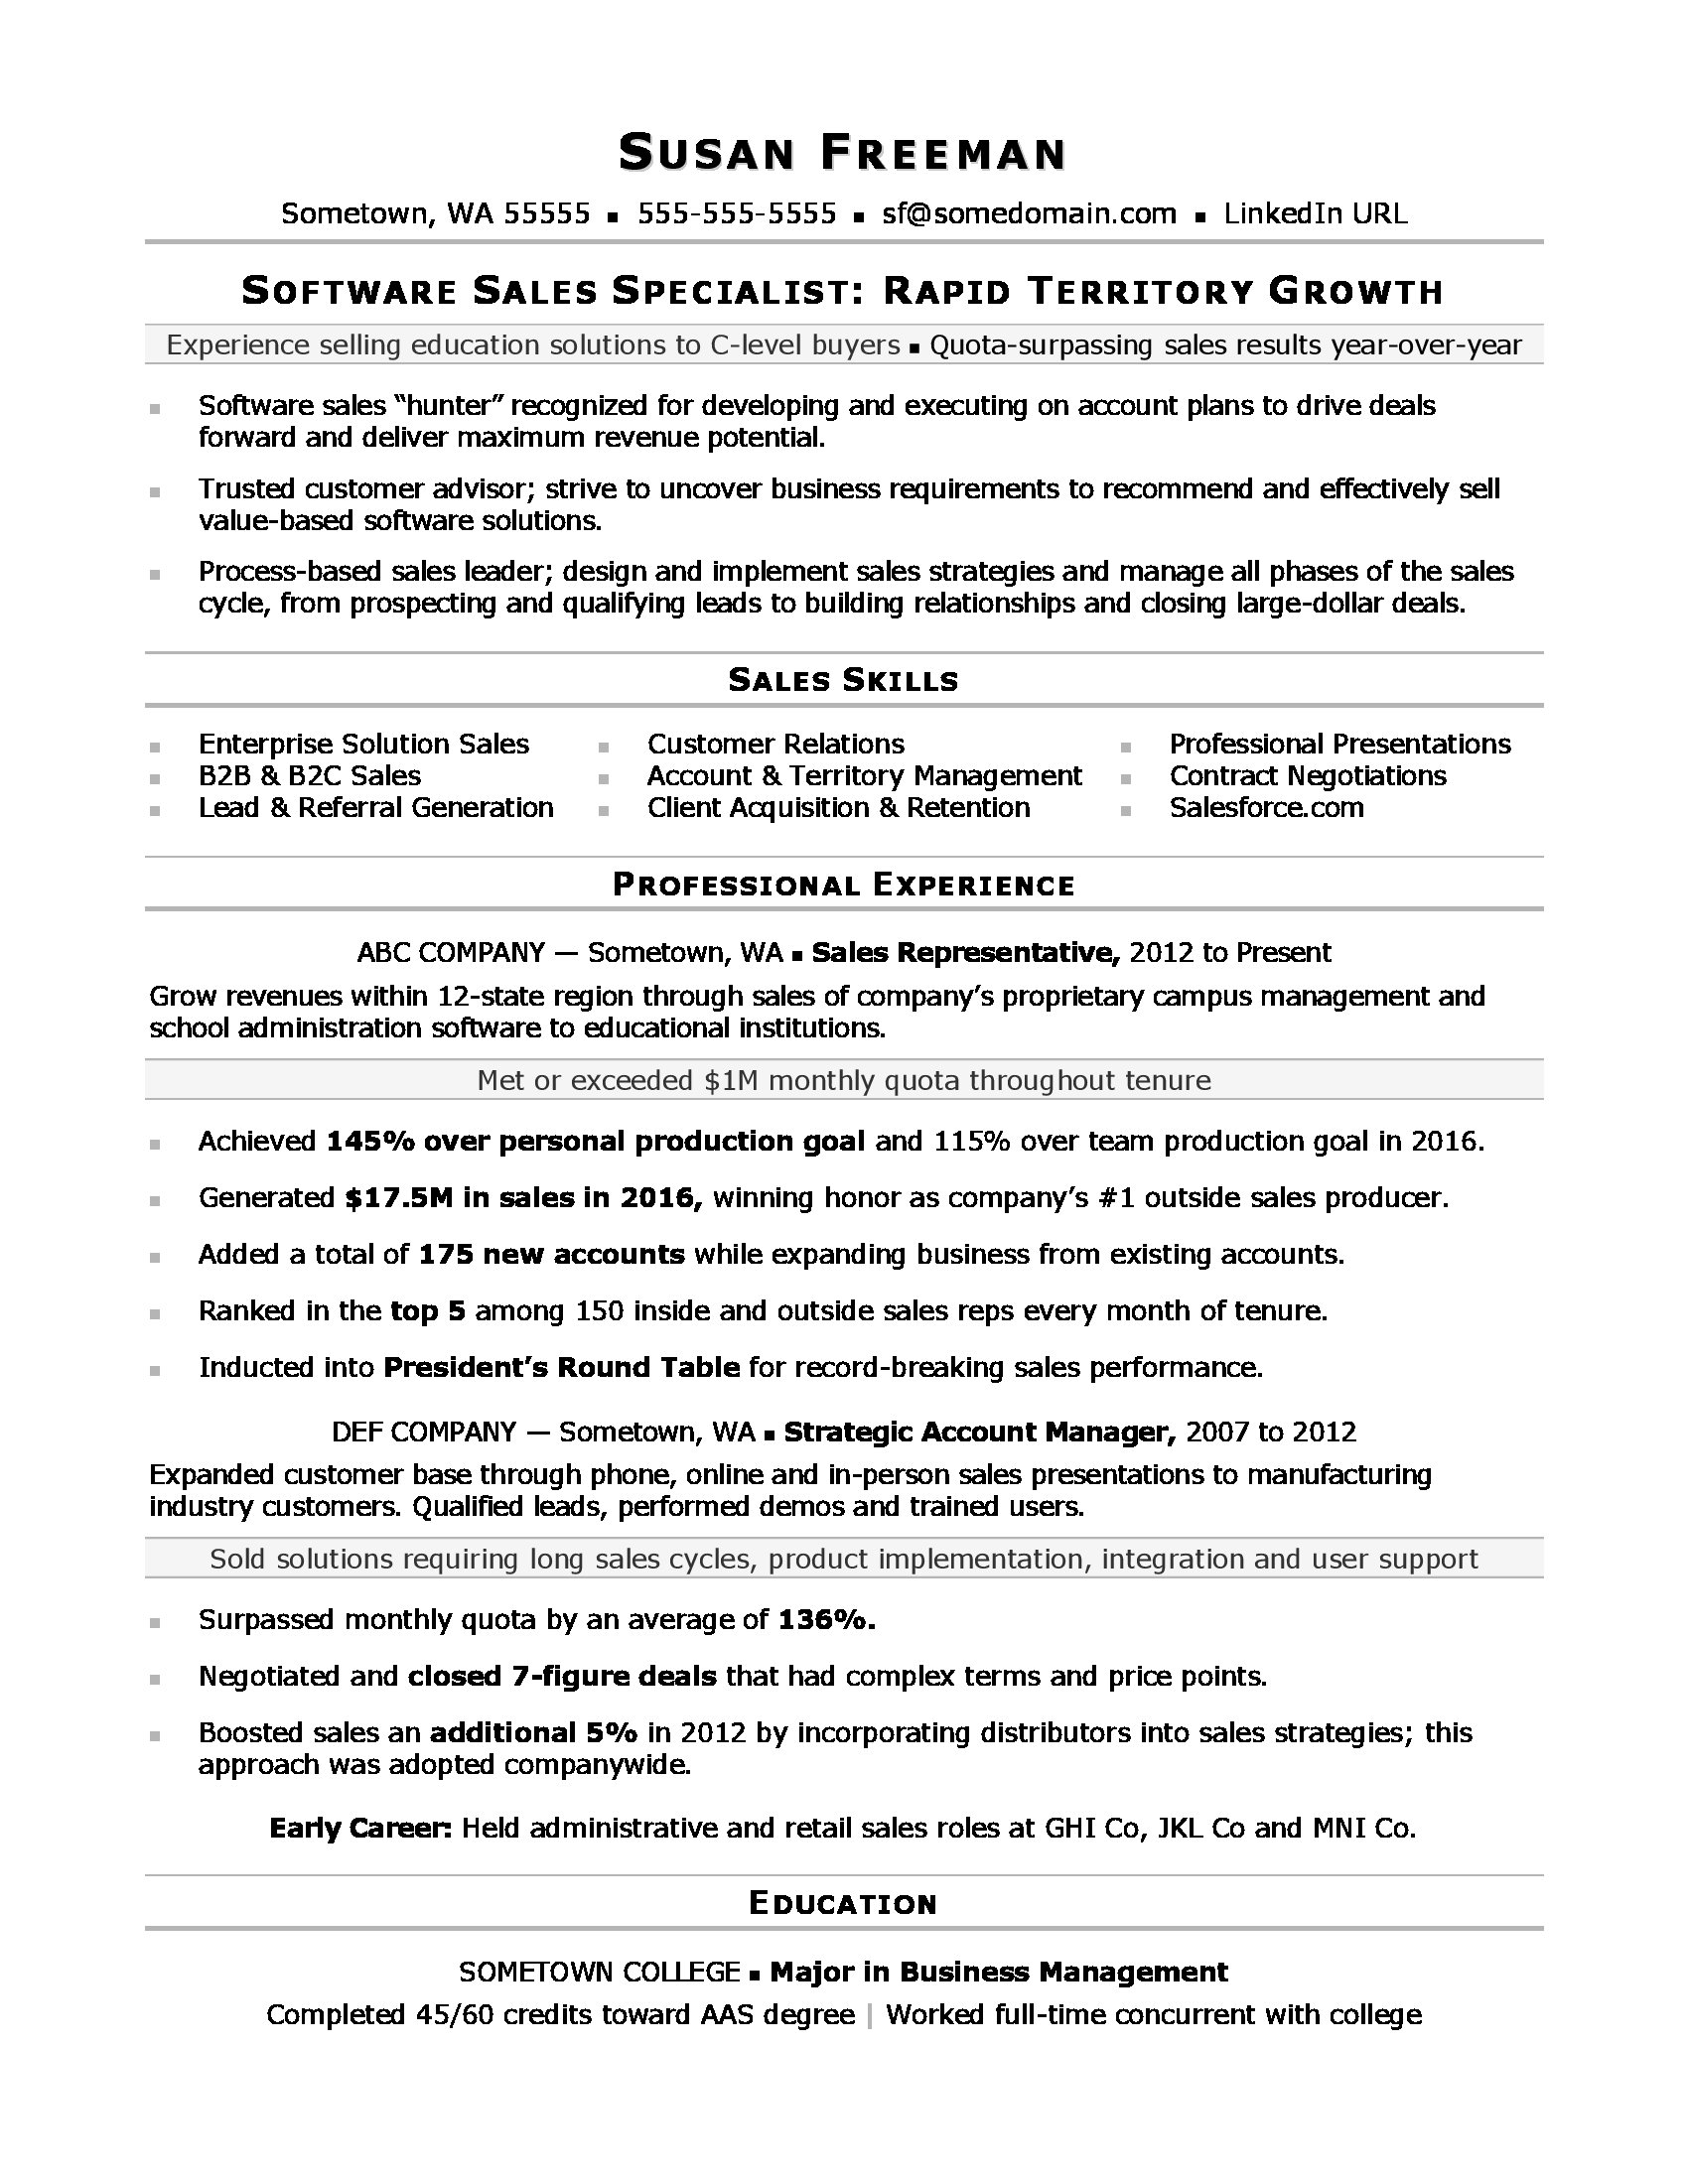 associate resume monster retail examples salesassociate landscape designer sample best Resume Retail Sales Associate Resume Examples